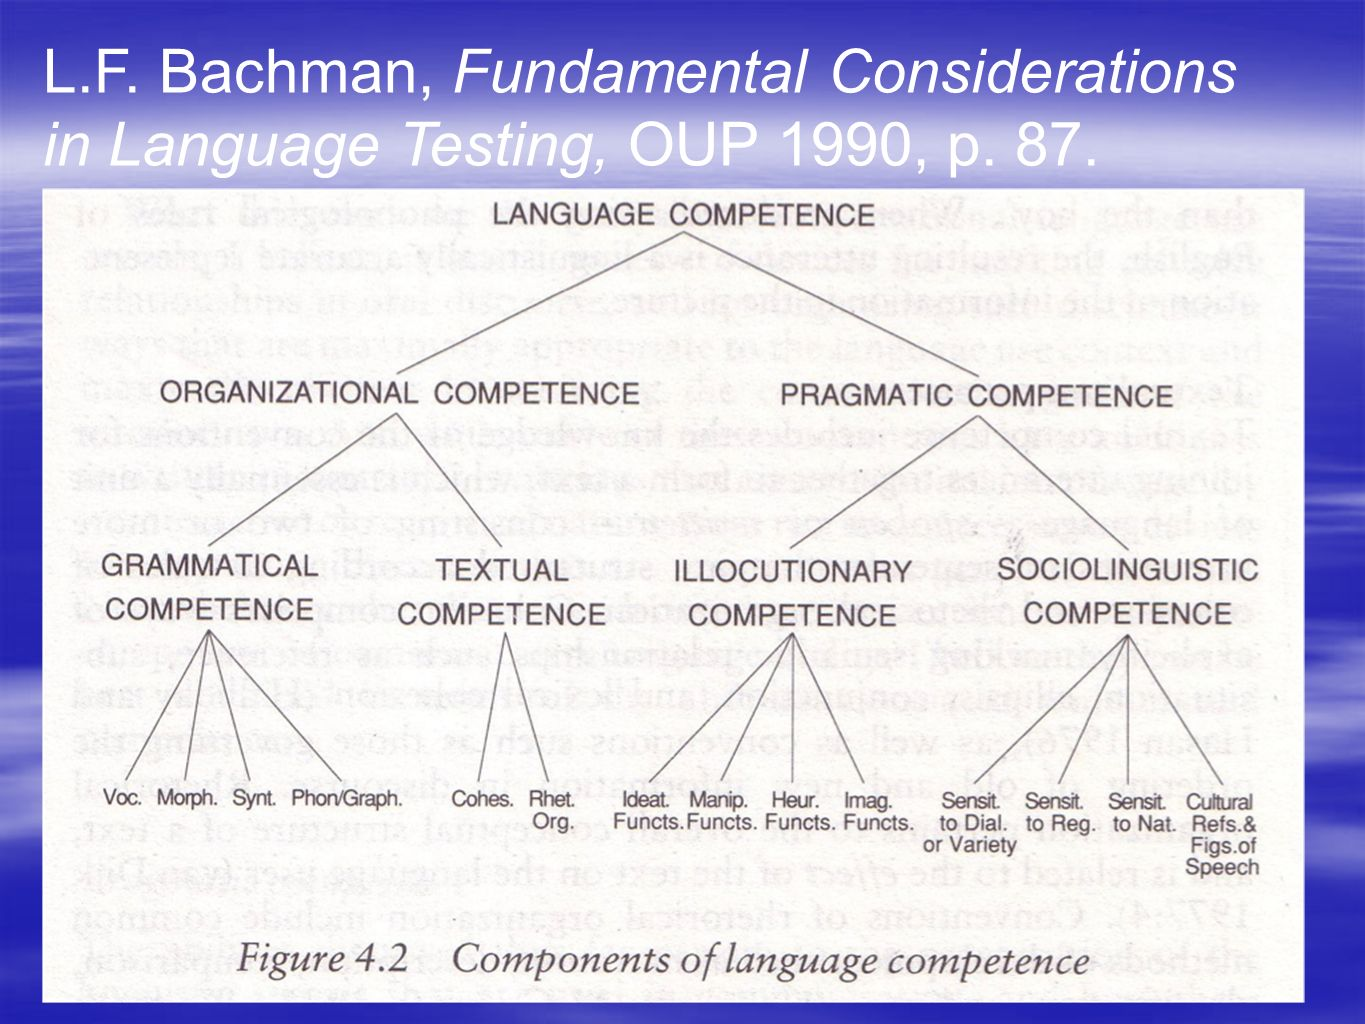 L.F. Bachman, Fundamental Considerations in Language Testing, OUP 1990, p. 87.